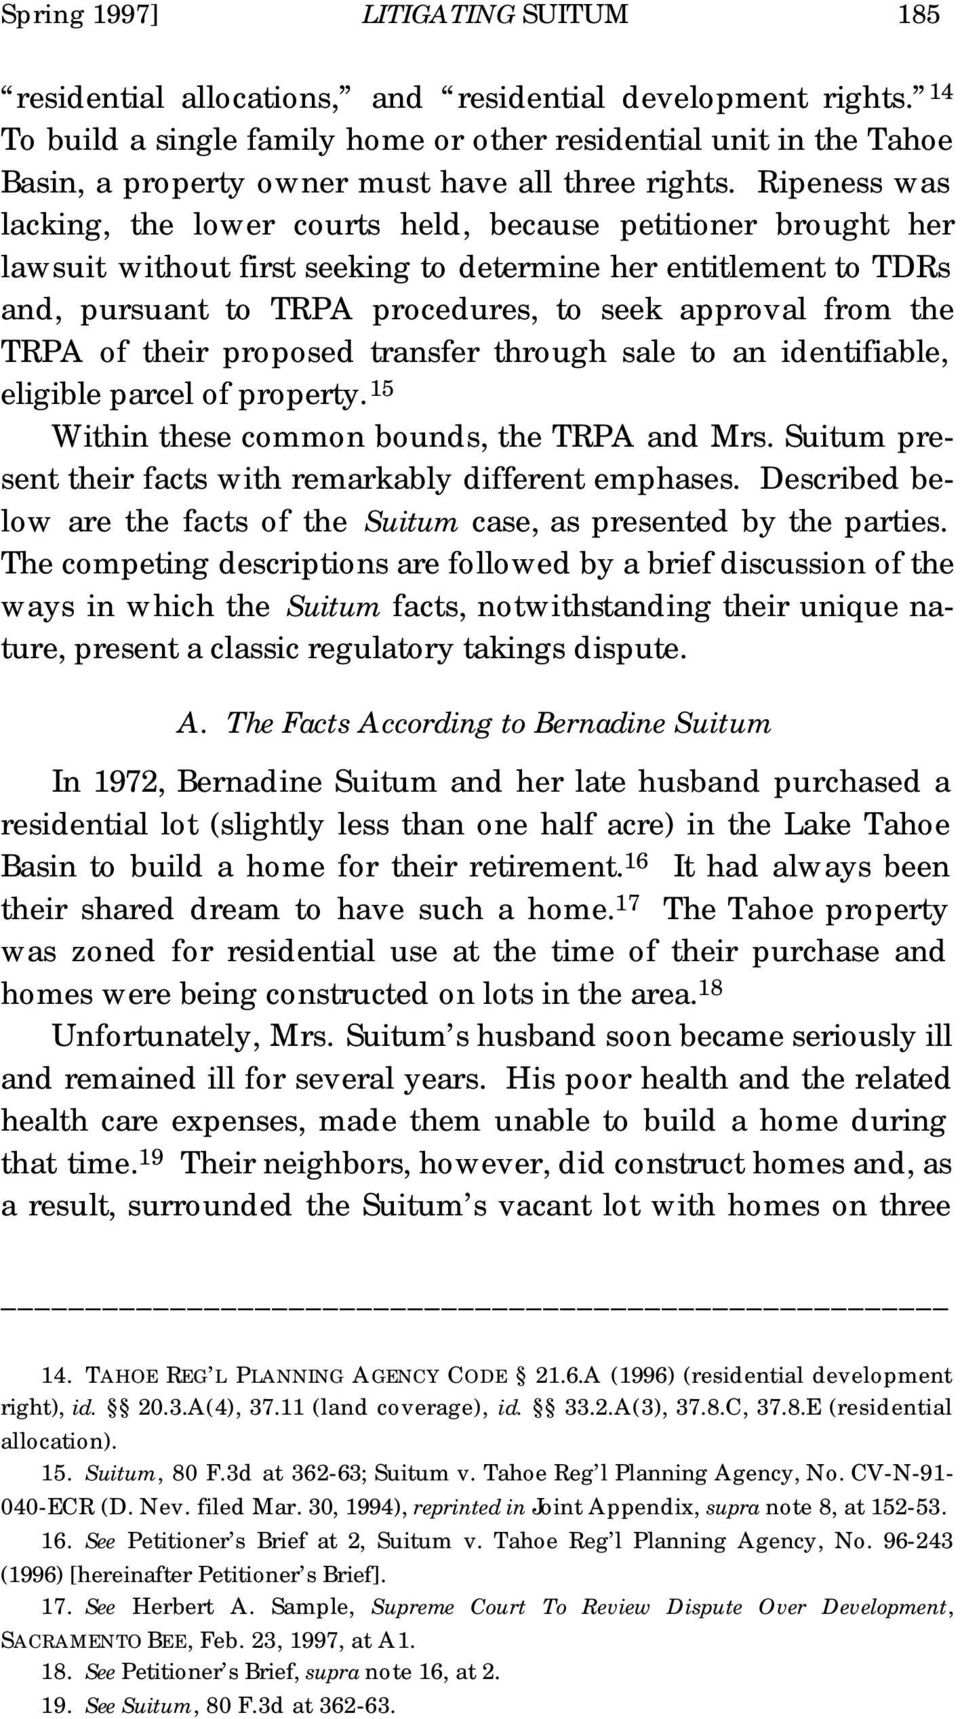 Ripeness was lacking, the lower courts held, because petitioner brought her lawsuit without first seeking to determine her entitlement to TDRs and, pursuant to TRPA procedures, to seek approval from